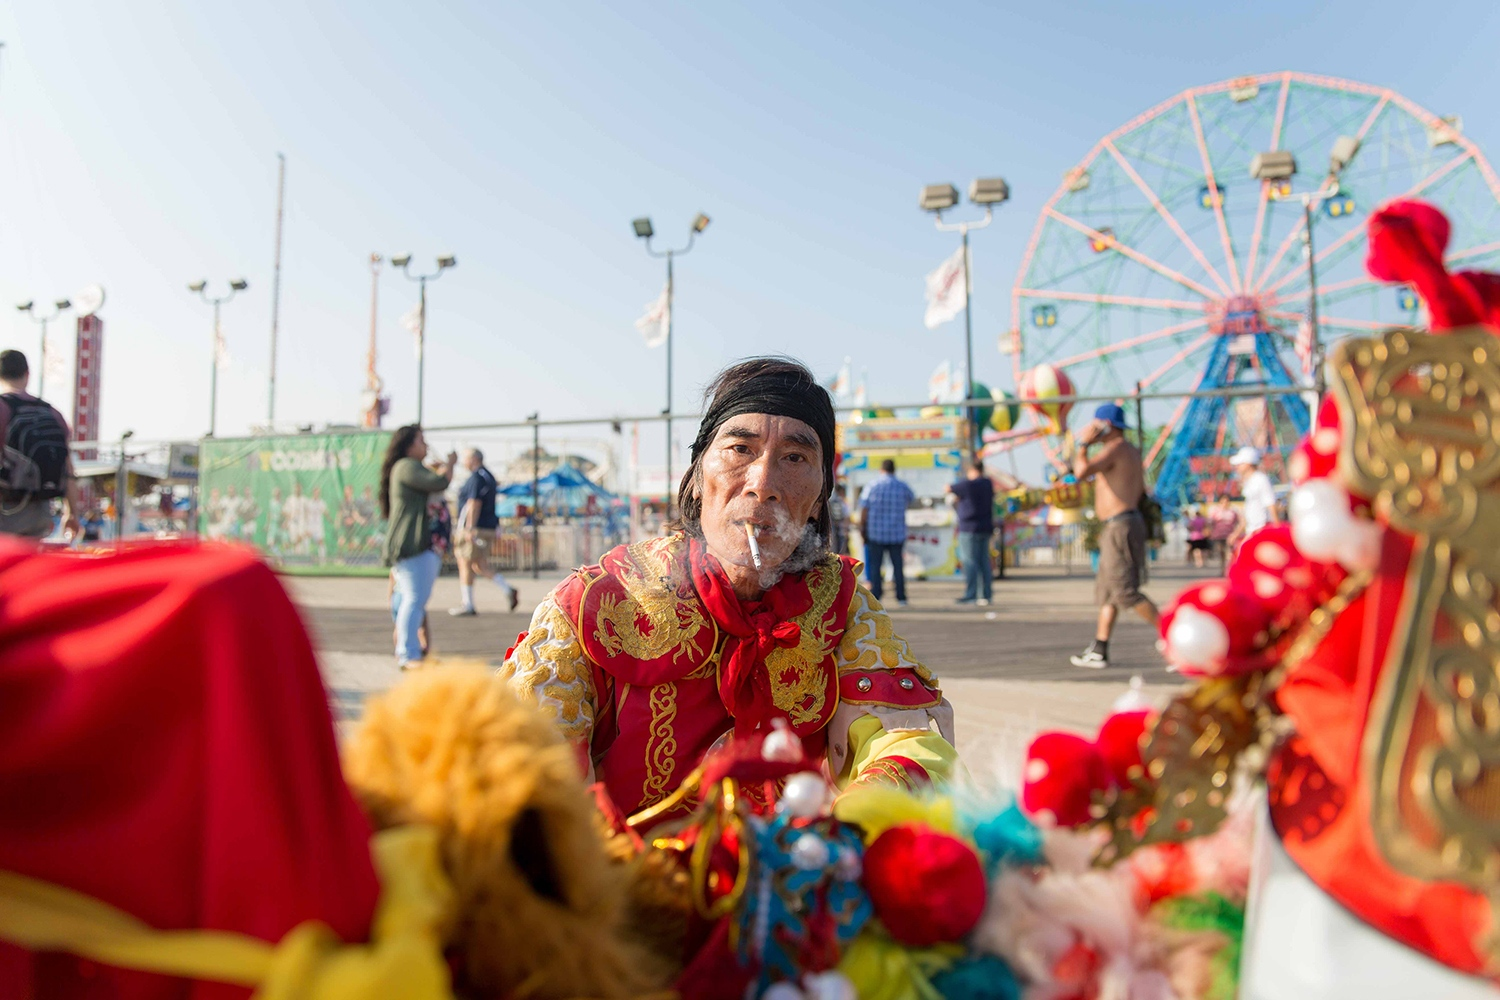 Performer at Coney Island | Brooklyn, New York, 2018